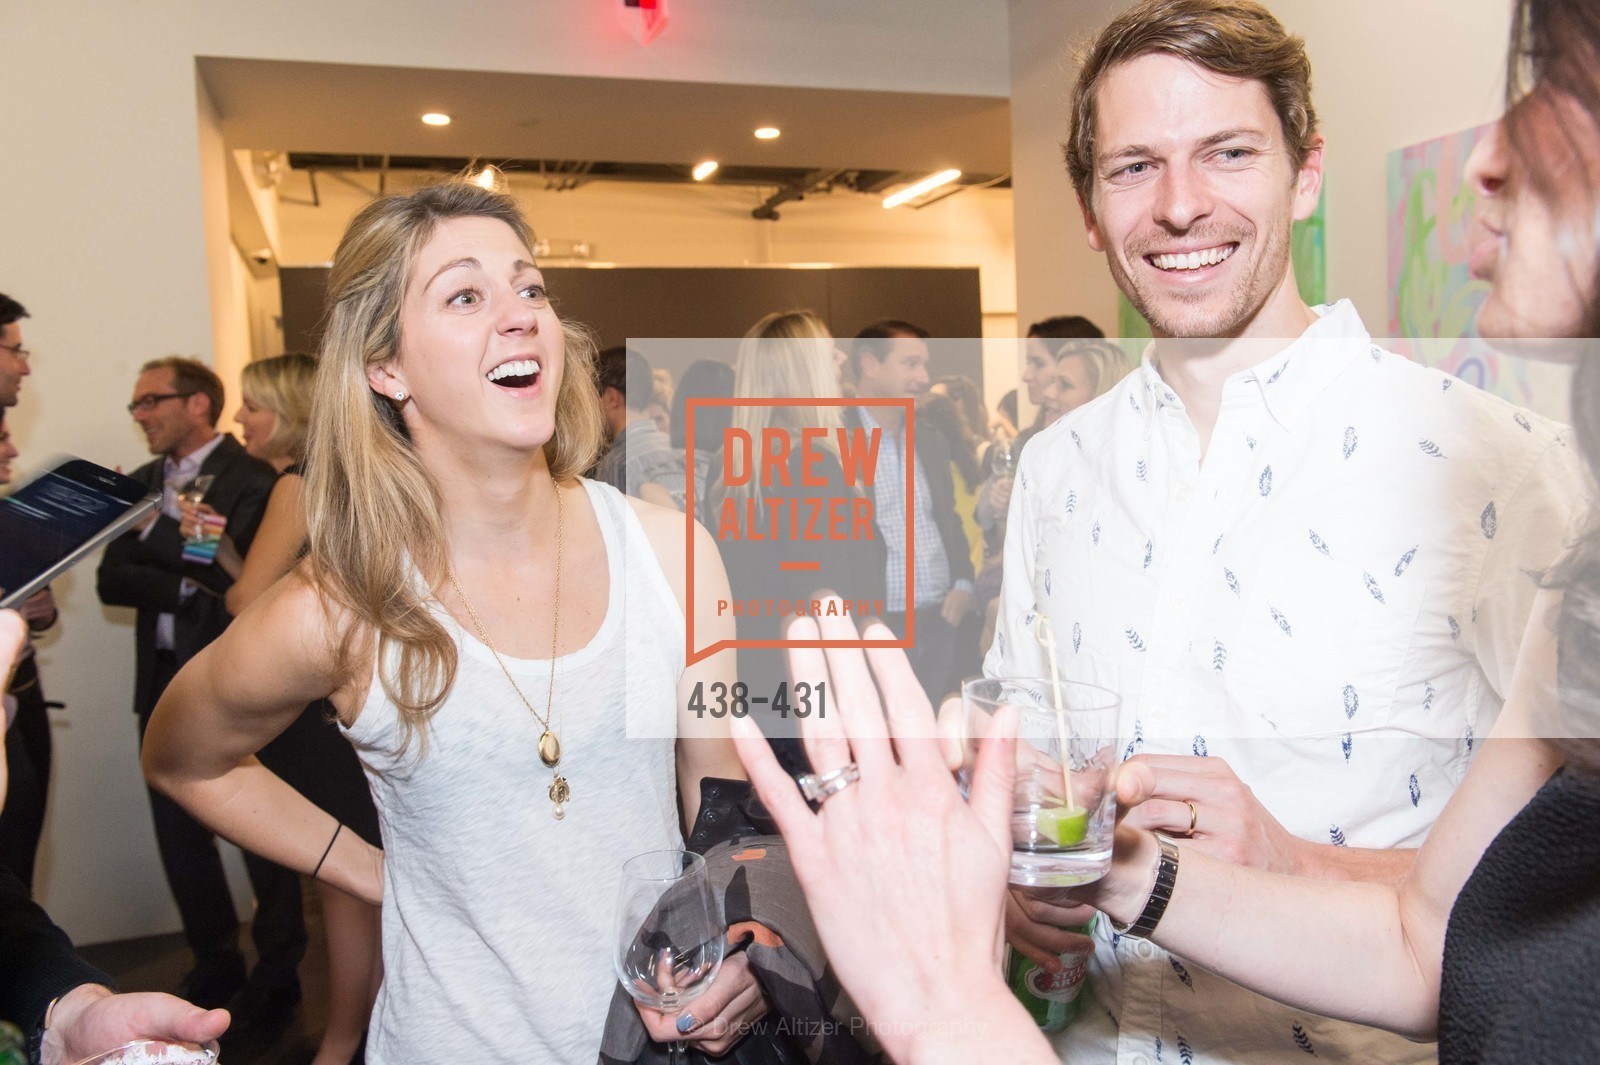 Extras, Artsy + Sotheby's Closing Party, October 30th, 2015, Photo,Drew Altizer, Drew Altizer Photography, full-service event agency, private events, San Francisco photographer, photographer California